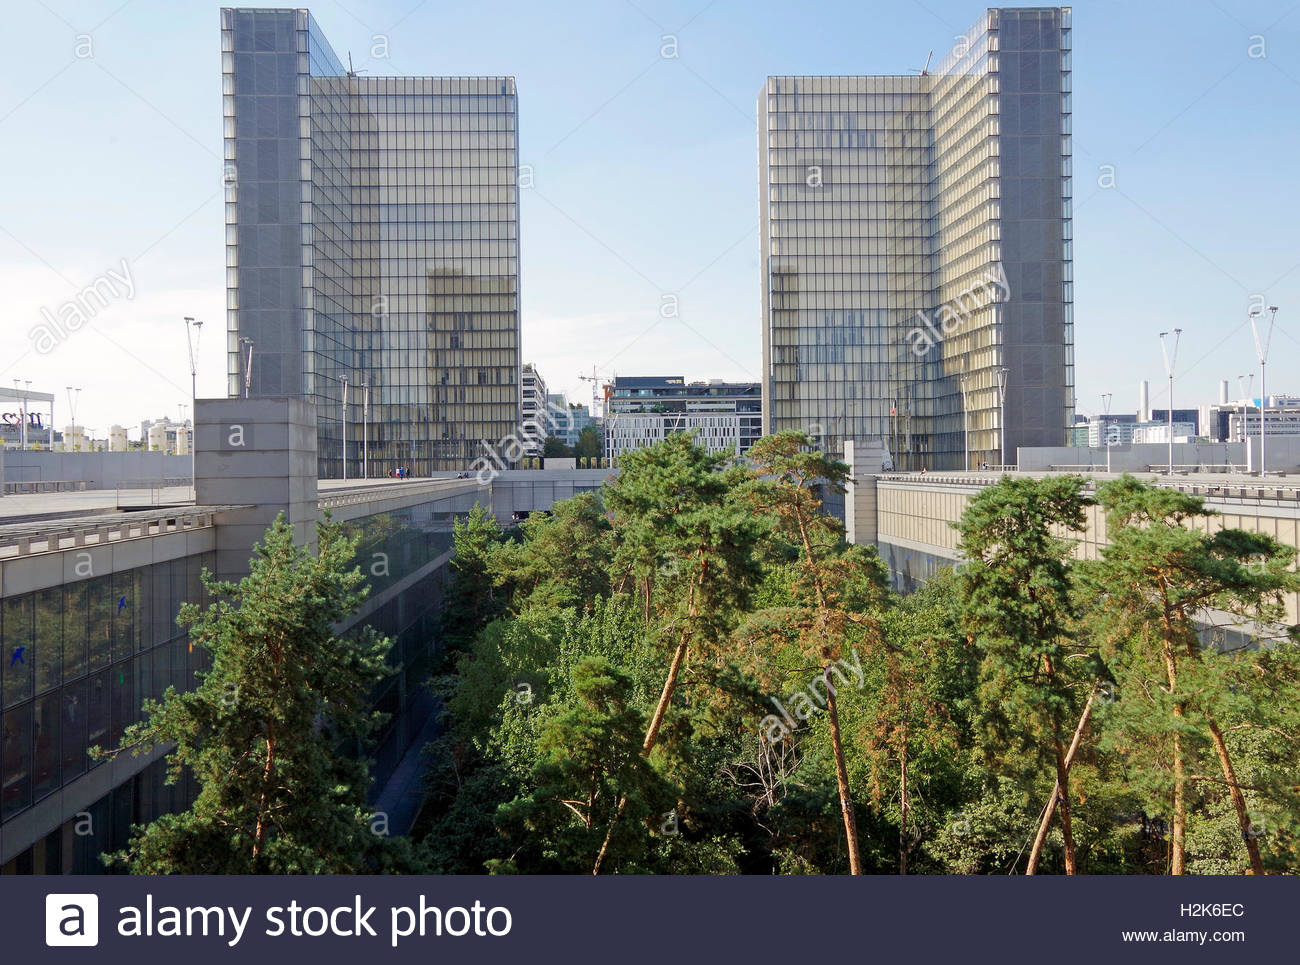 Photo De Bibliothèque Bibliothèque Nationale De France Stock Photos